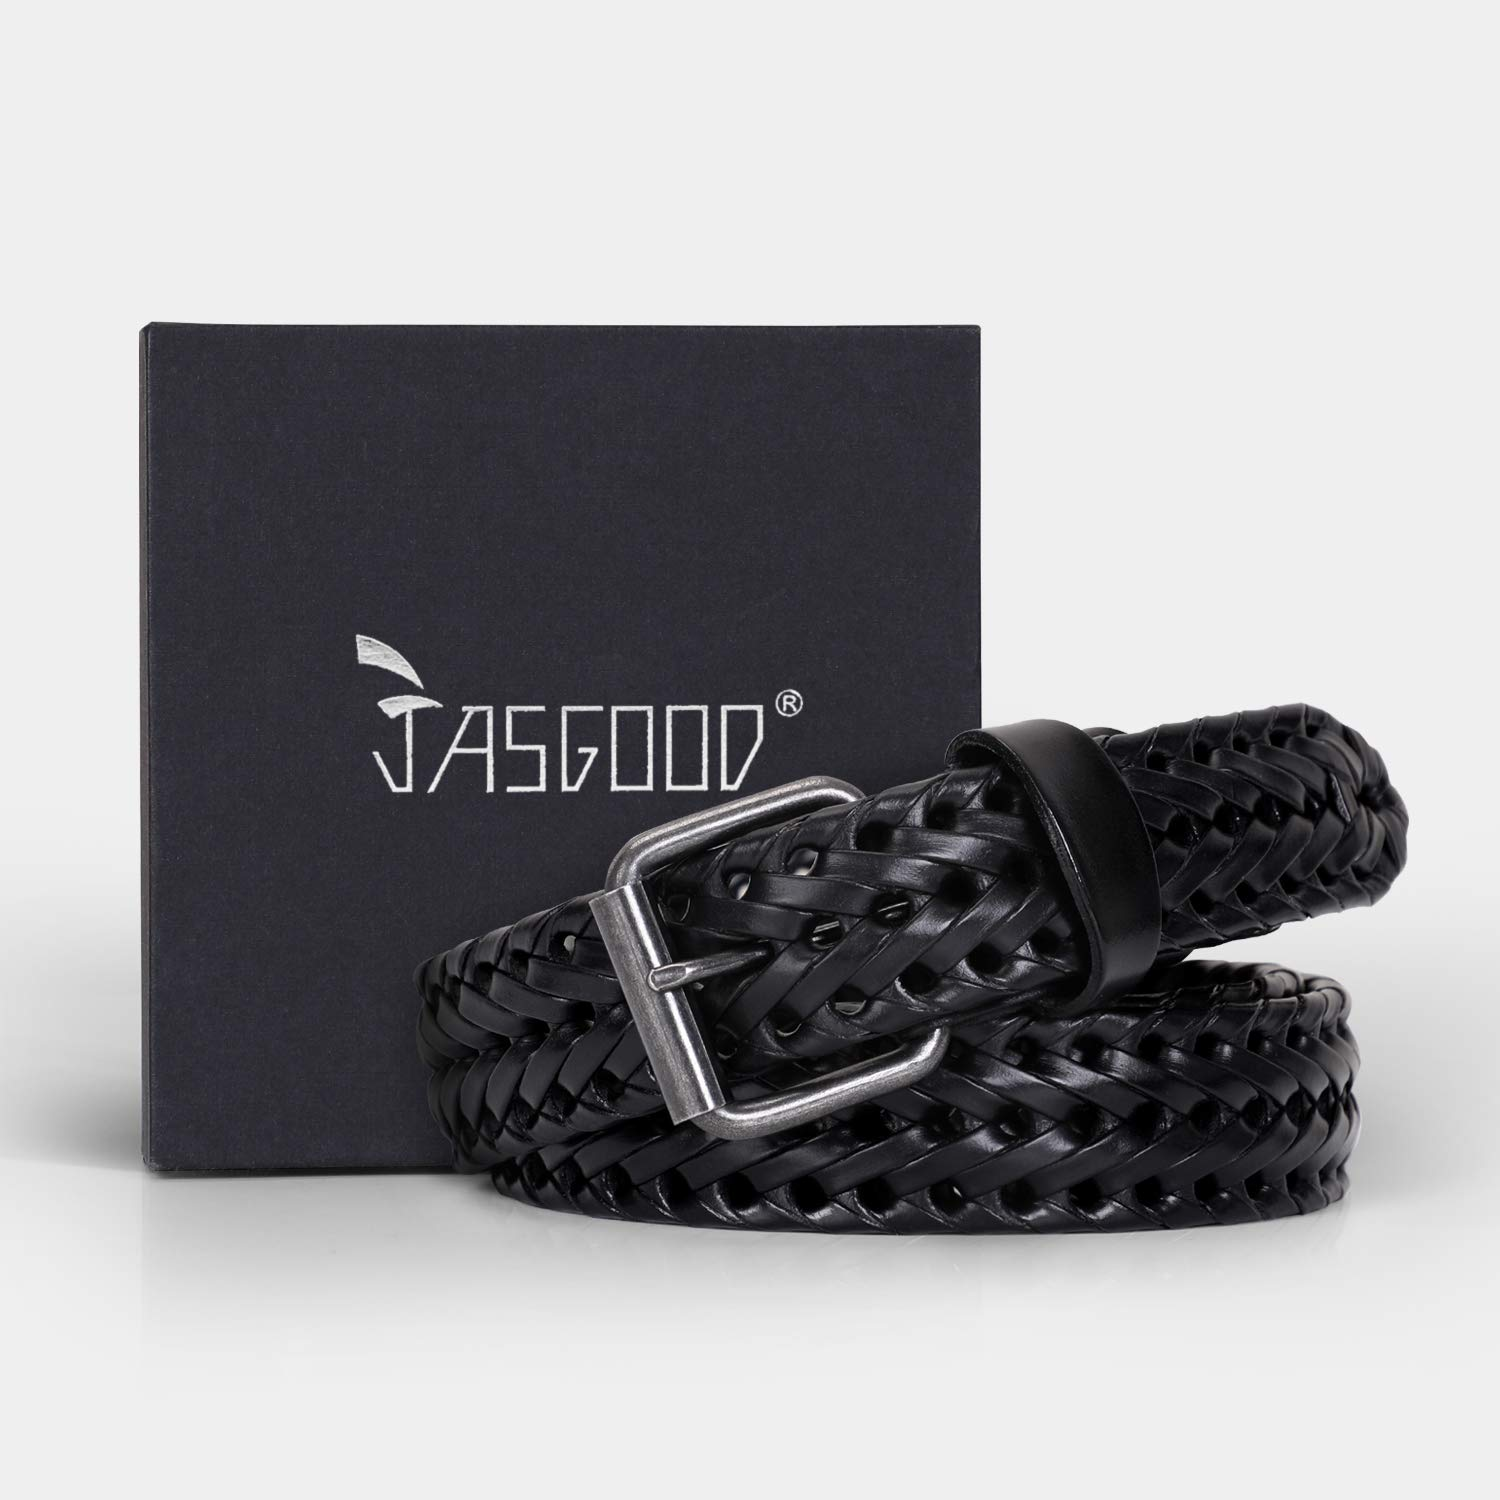 Men\'s Leather Braided Belt, JasGood Cowhide Leather Woven Belt for Jeans 1.3 Inch Wide with Prong Buckle,Fits Pants Size 33-38 Inches,1-Black